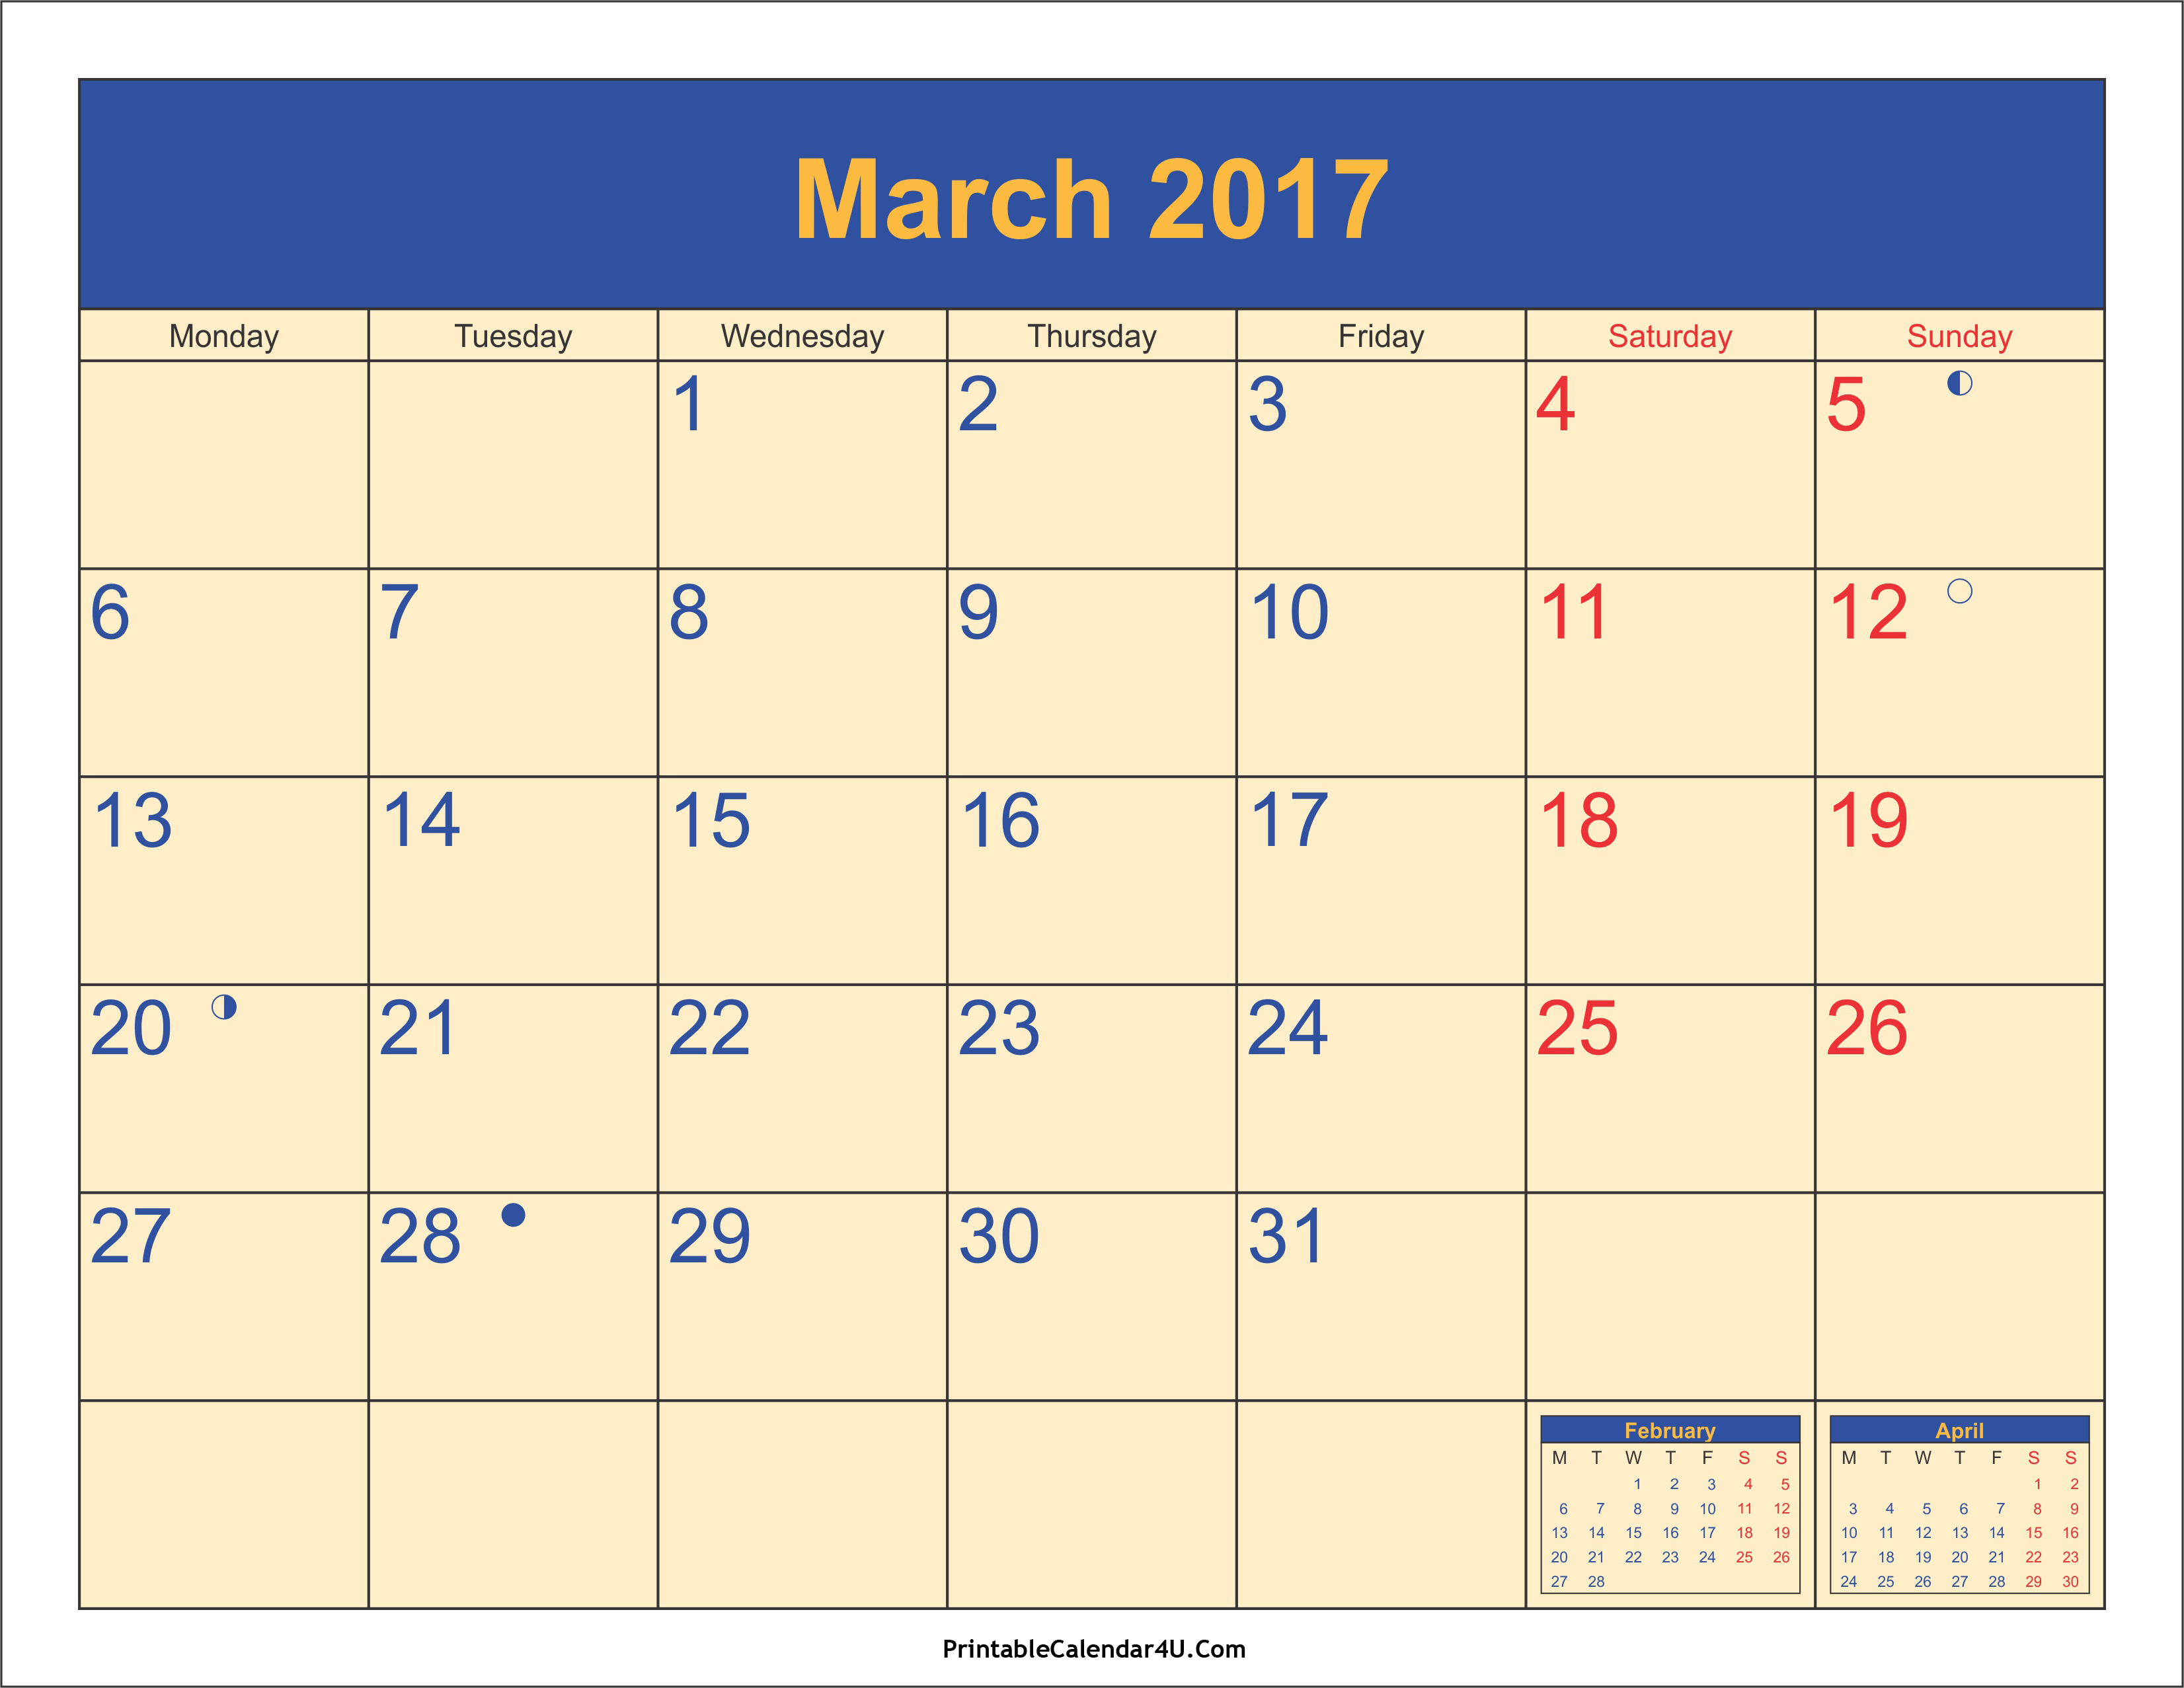 March 2017 Calendar With Holidays Uk